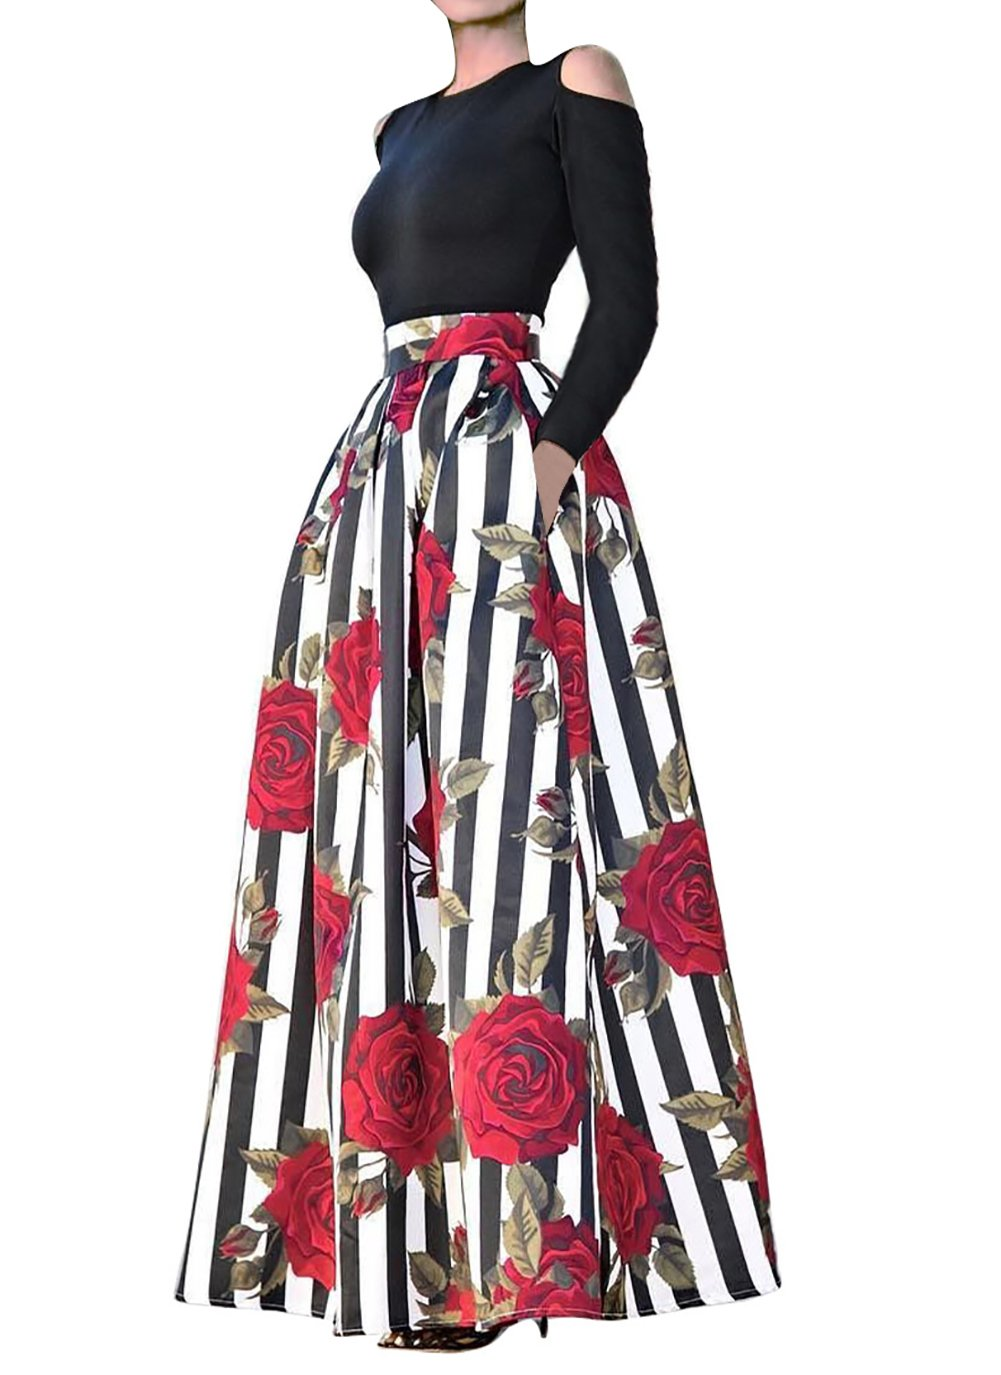 VLUNT Women's African Floral Print A Line Long Skirt Pockets Two Pieces Maxi Dress Medium Red